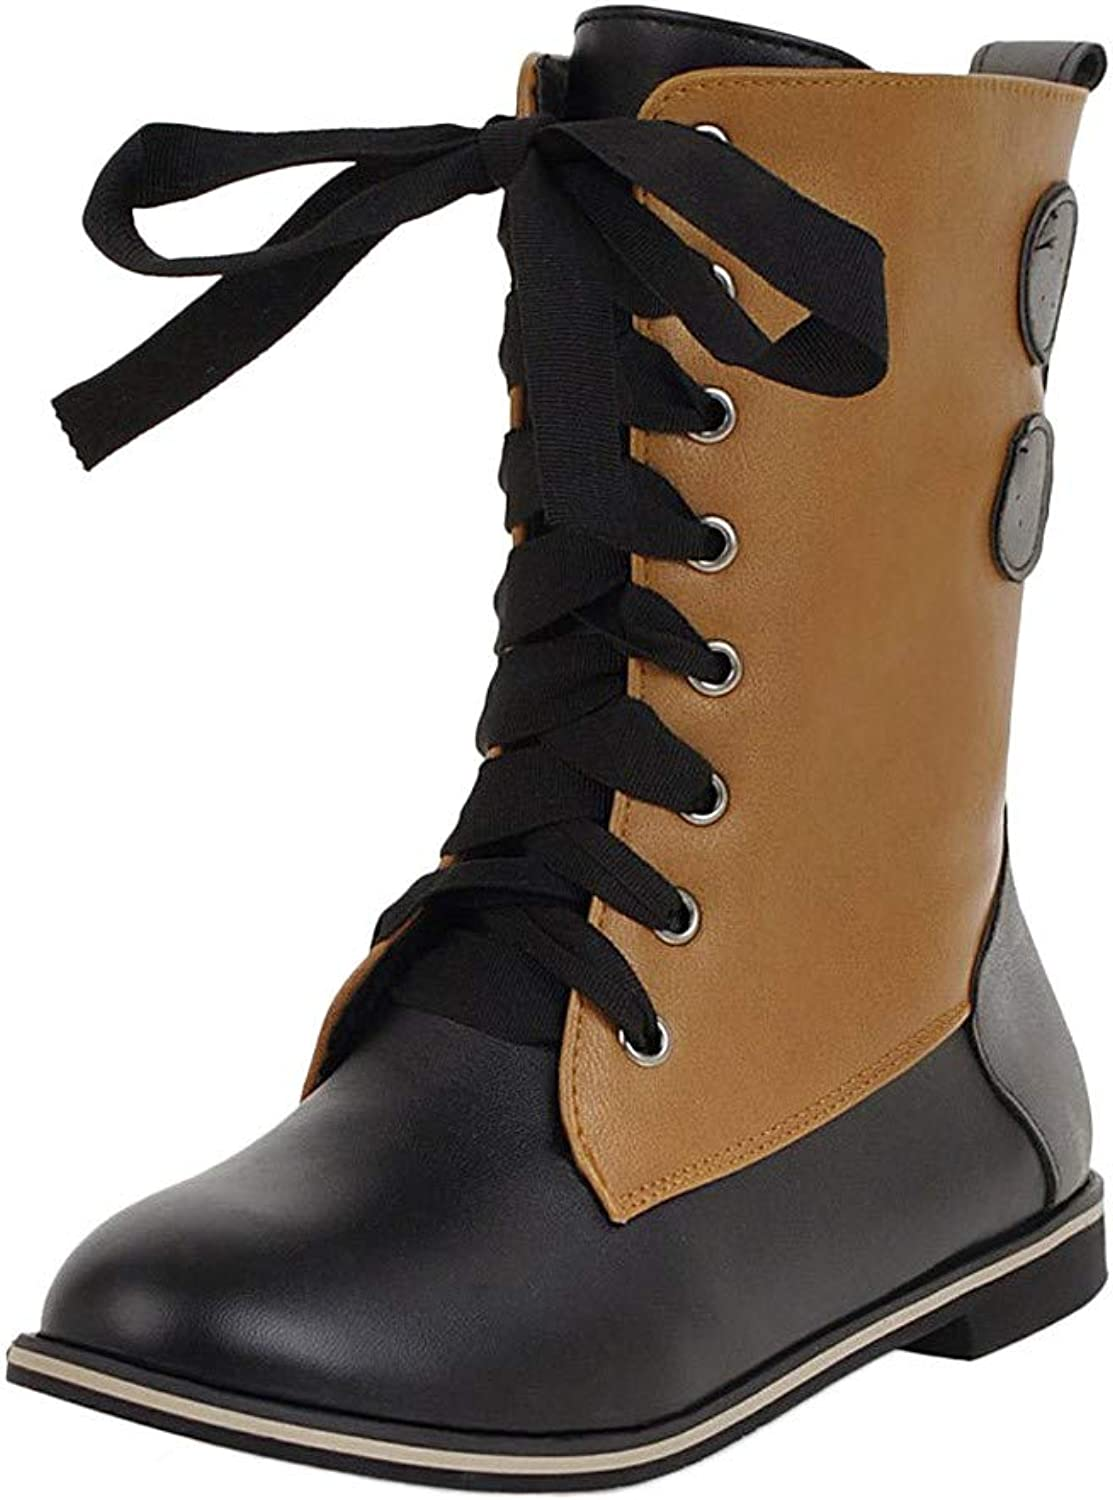 Anxinke Women Fashion Lace-up Leather Mid Calf Combat Boots